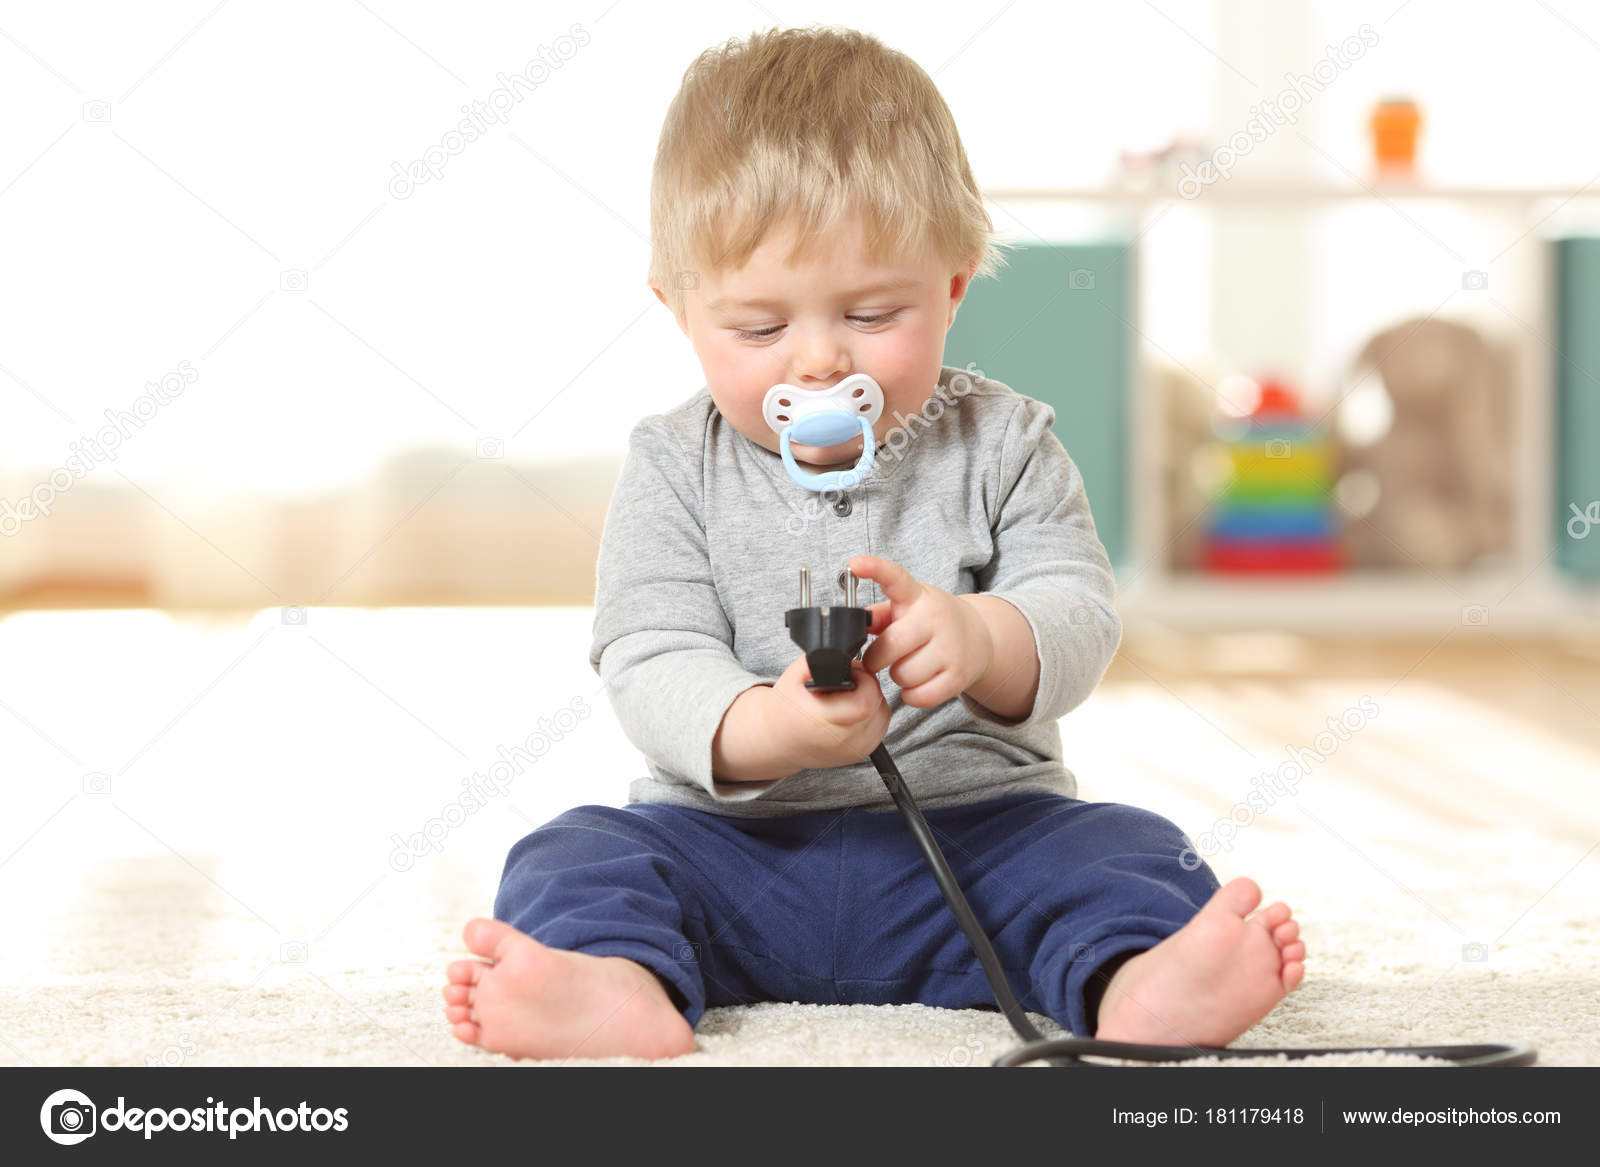 Fronf View Portrait Of A Baby In Danger Playing With An Electric Plug  Sitting On The Floor At Home U2014 Photo By AntonioGuillemF